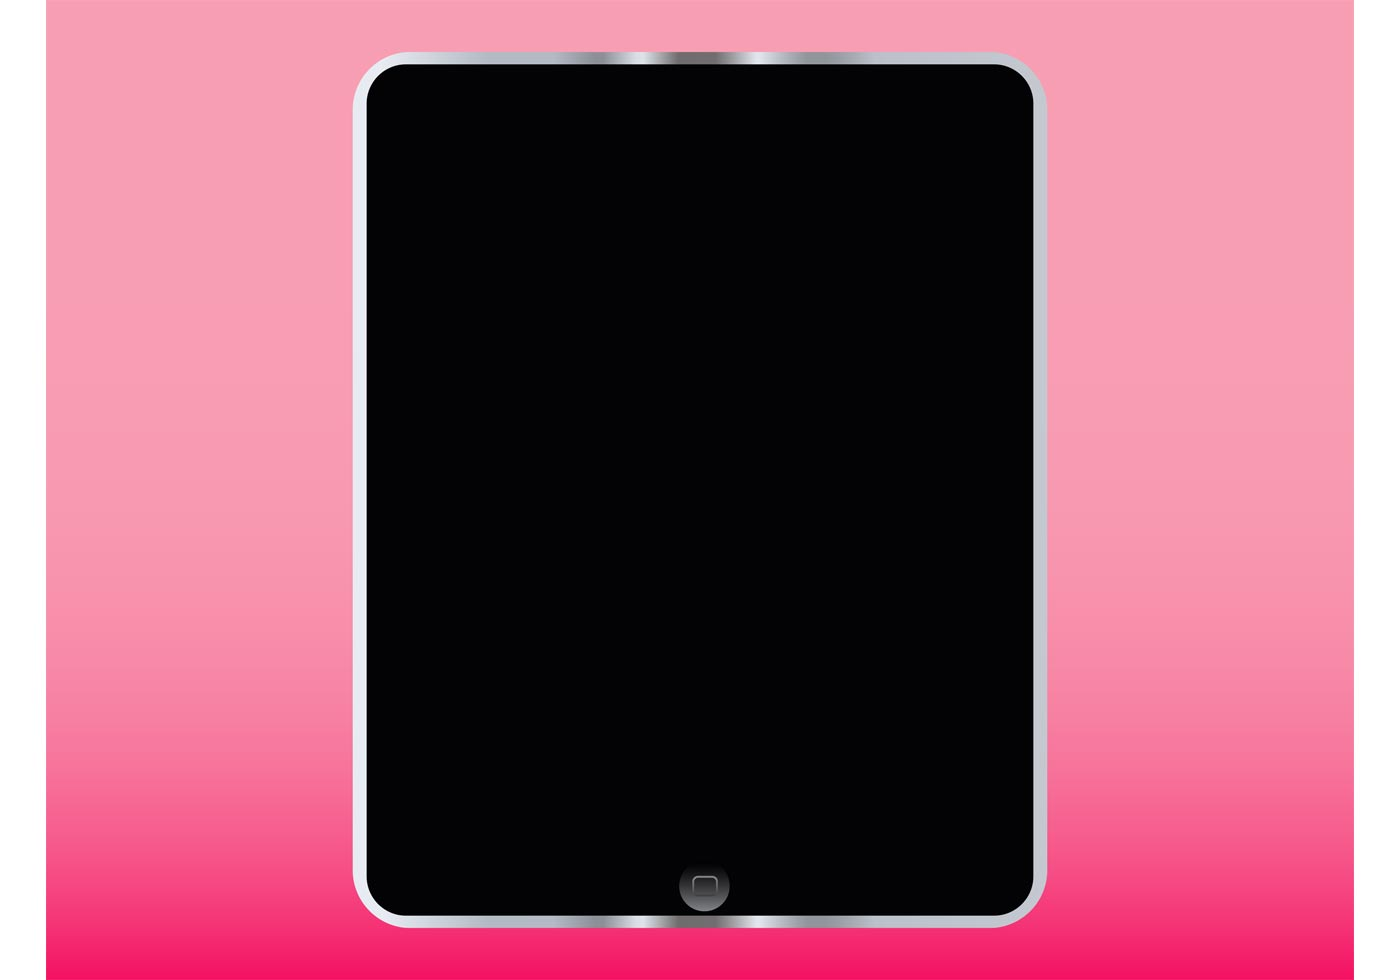 iPad Vector Graphics - Download Free Vector Art, Stock ...